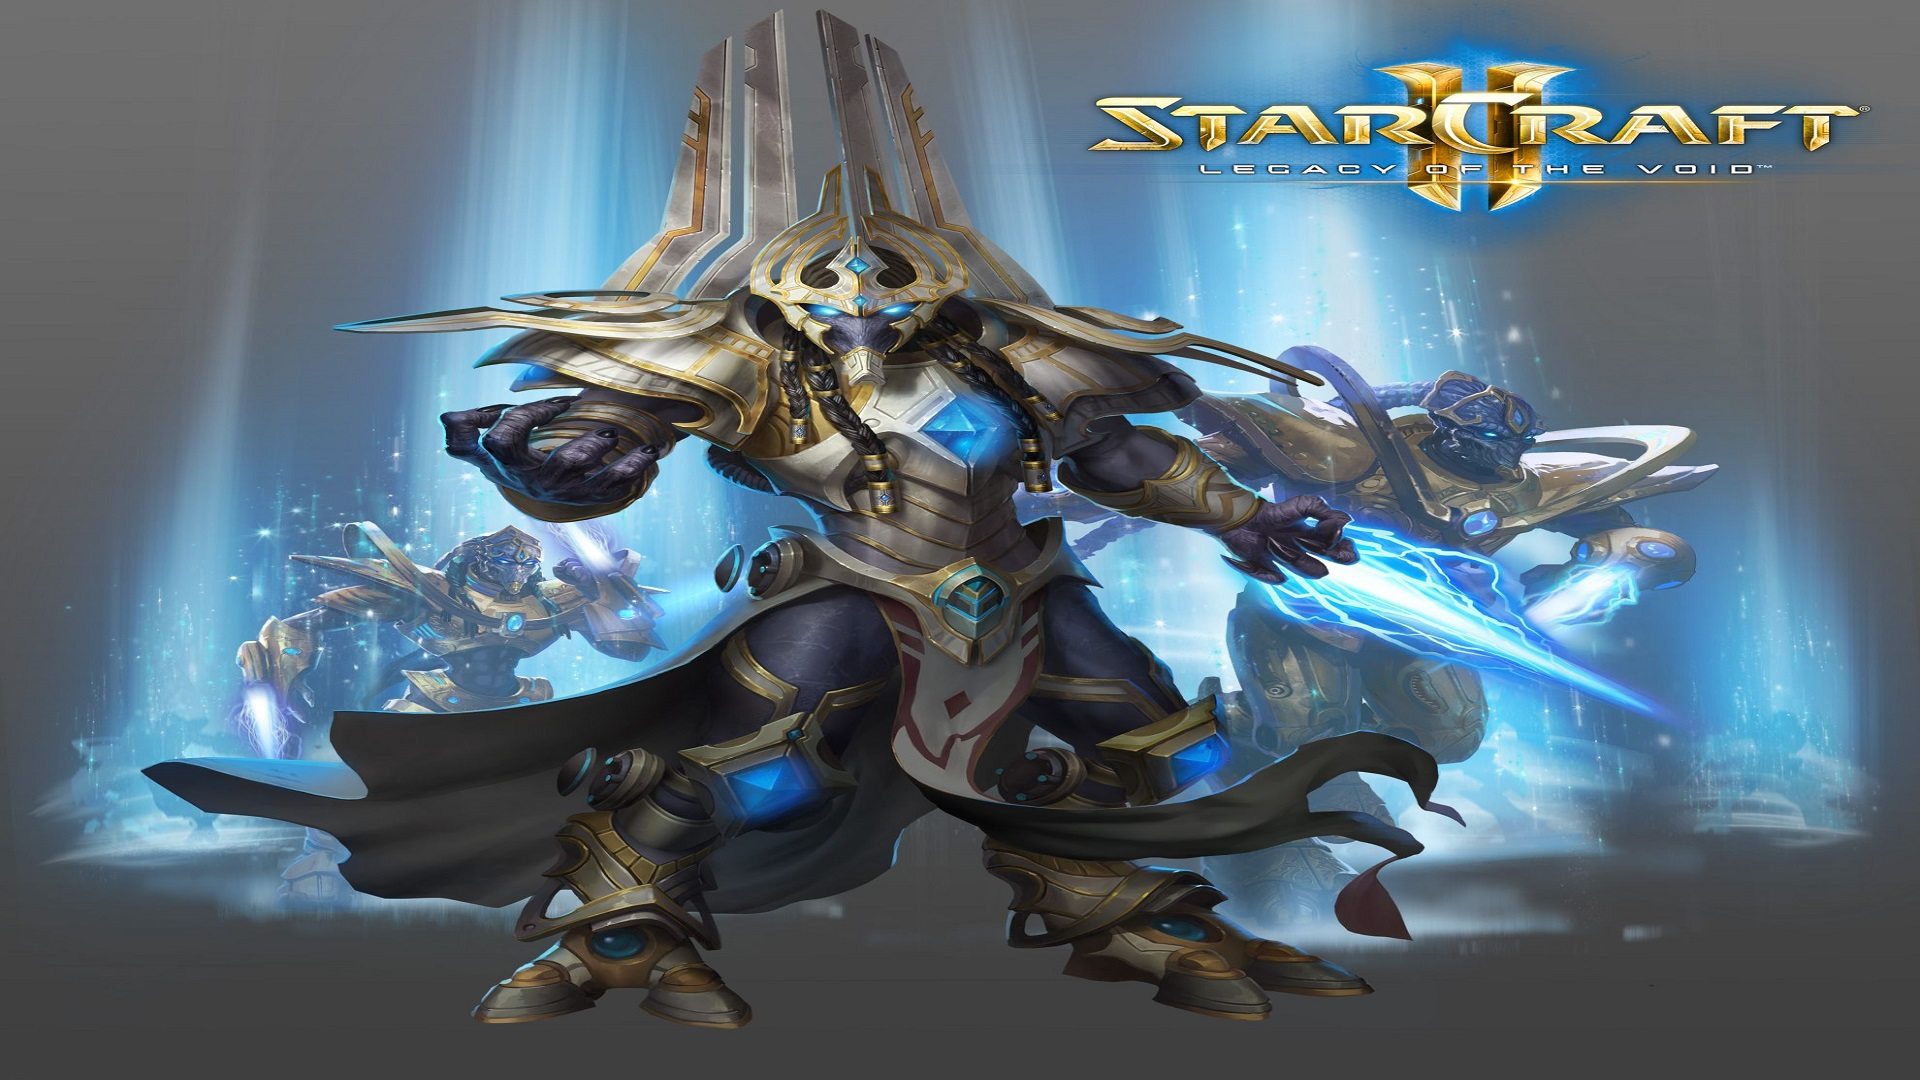 Starcraft 2 Legacy Of The Void Wallpaper Pic Image Armies Of